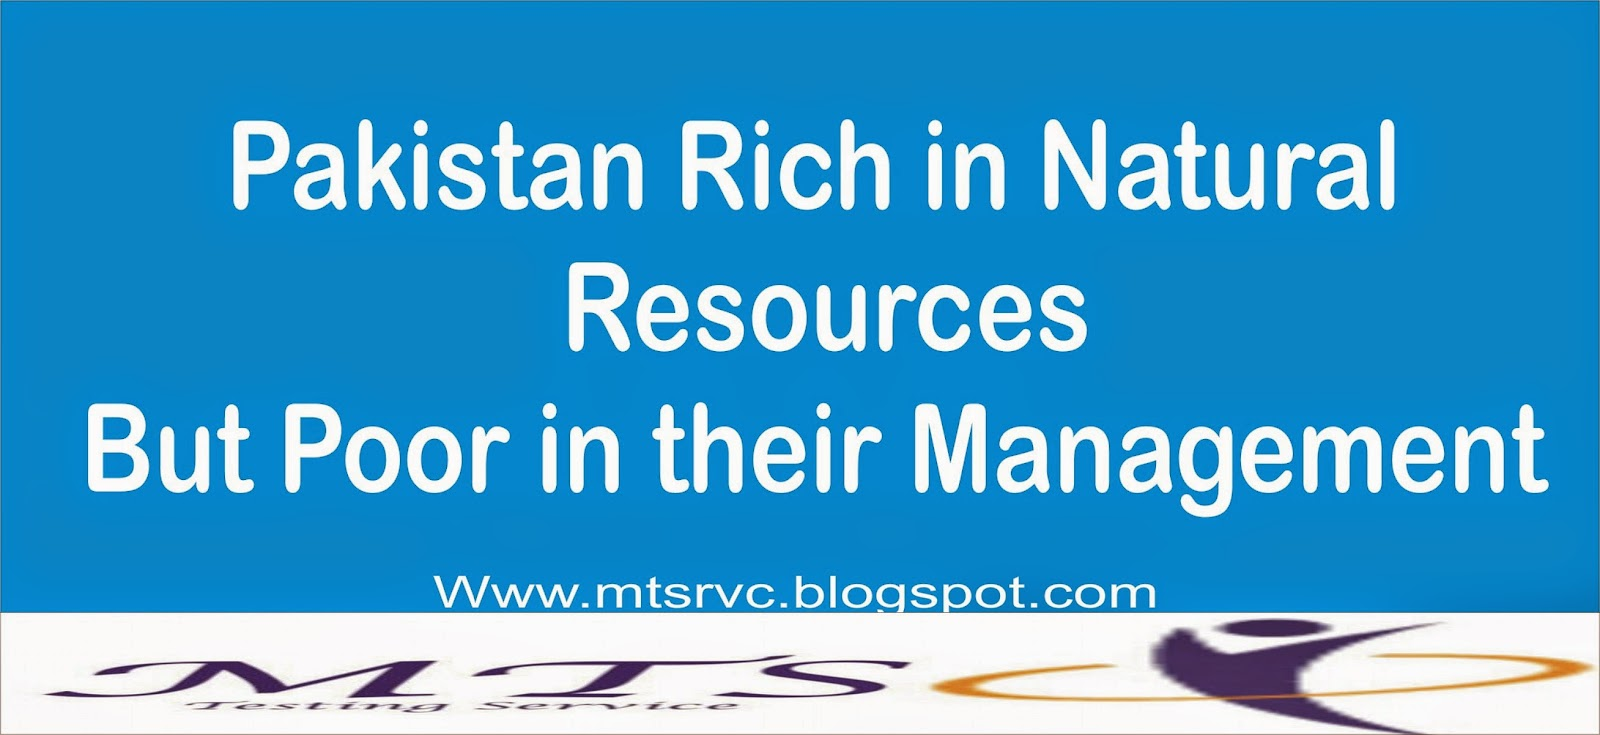 Pakistan Rich in Natural Resources But Poor in their